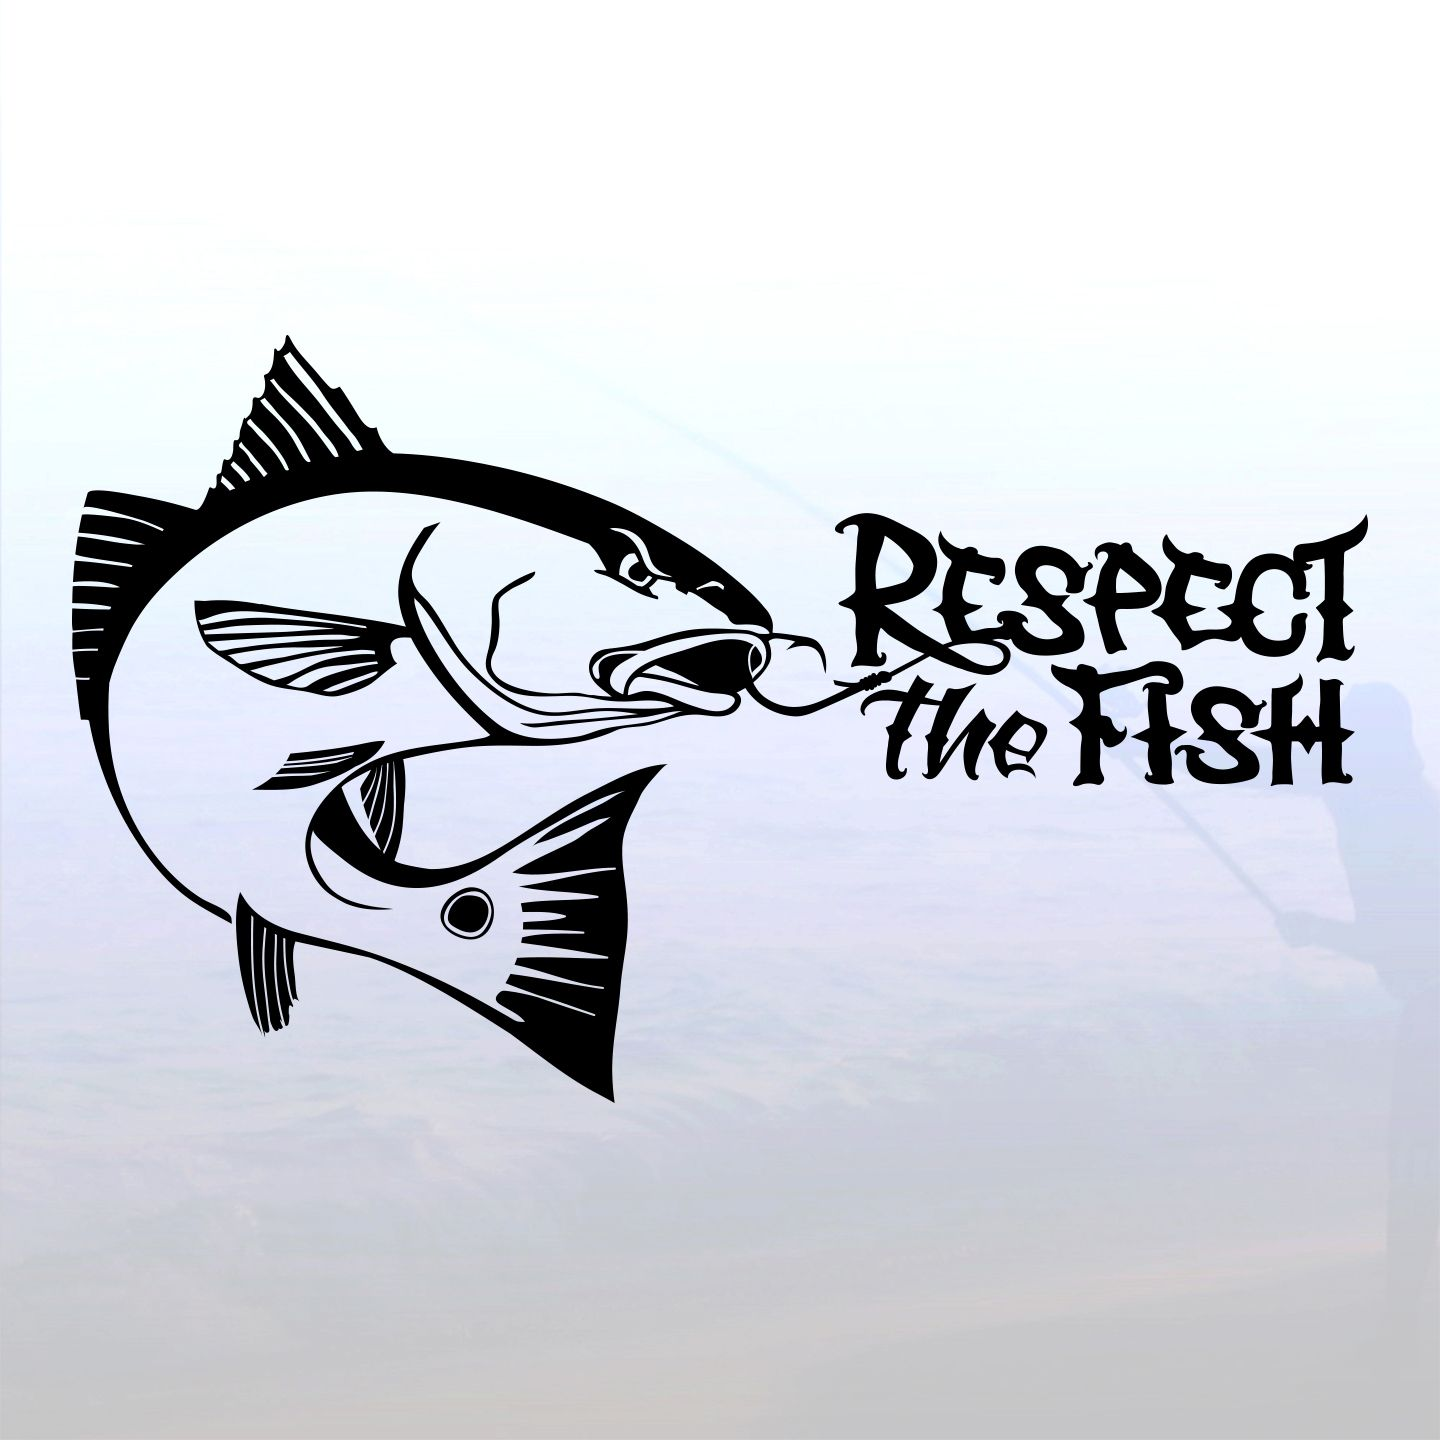 Redfish Outline Decal Respect The Redfish Decal In Cricuts